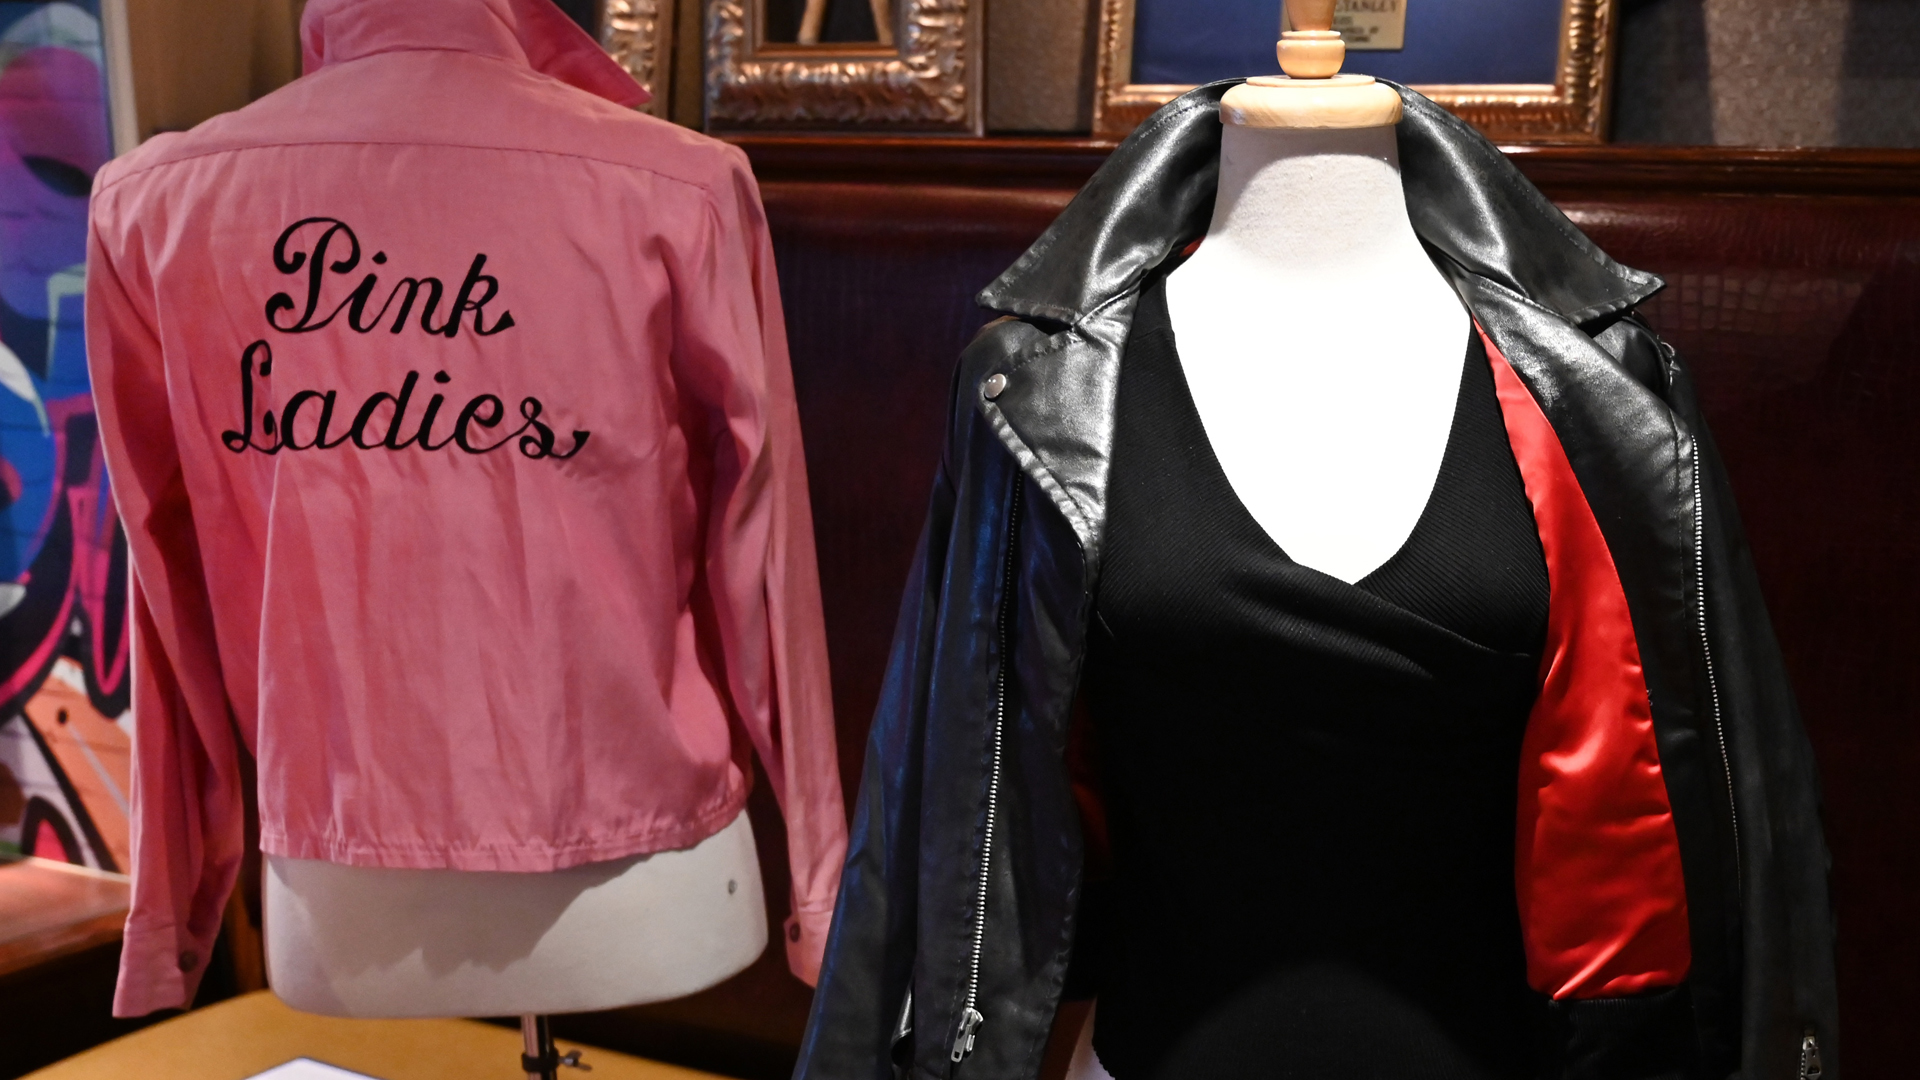 """Olivia Newton-John's famous black leather jacket worn in the blockbuster film """"Grease"""" and her Grease """"Pink Ladies"""" jacket worn in the film are shown during a Julien's Auctions press preview at Hard Rock Cafe in New York on October 16, 2019.(Credit: Timothy A. Clary/AFP via Getty Images)"""